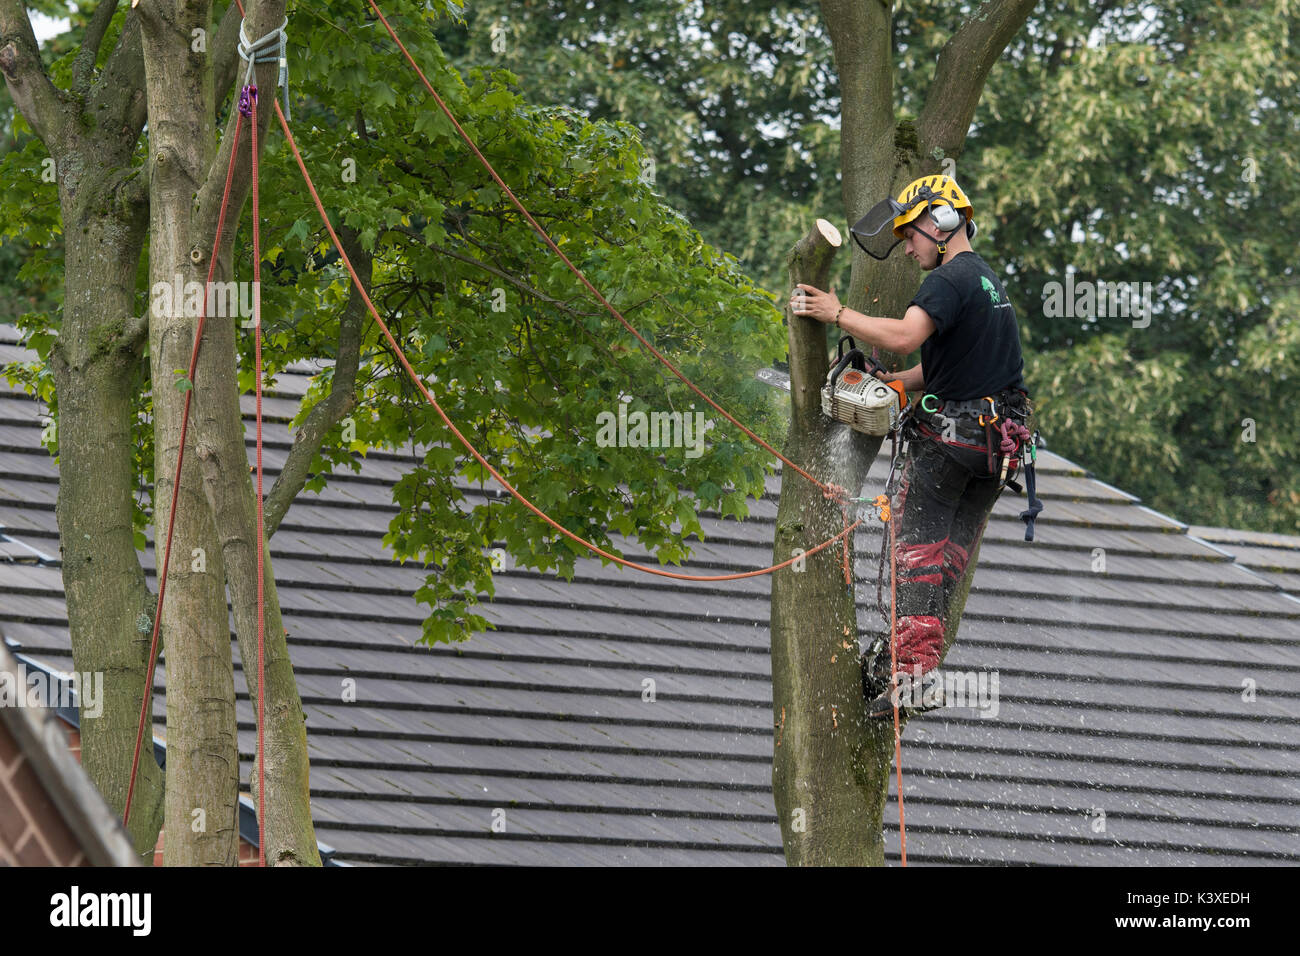 Tree surgeon working in protective gear, using climbing ropes for safety & holding chainsaw, high in branches of garden tree - Yorkshire, England, UK. - Stock Image